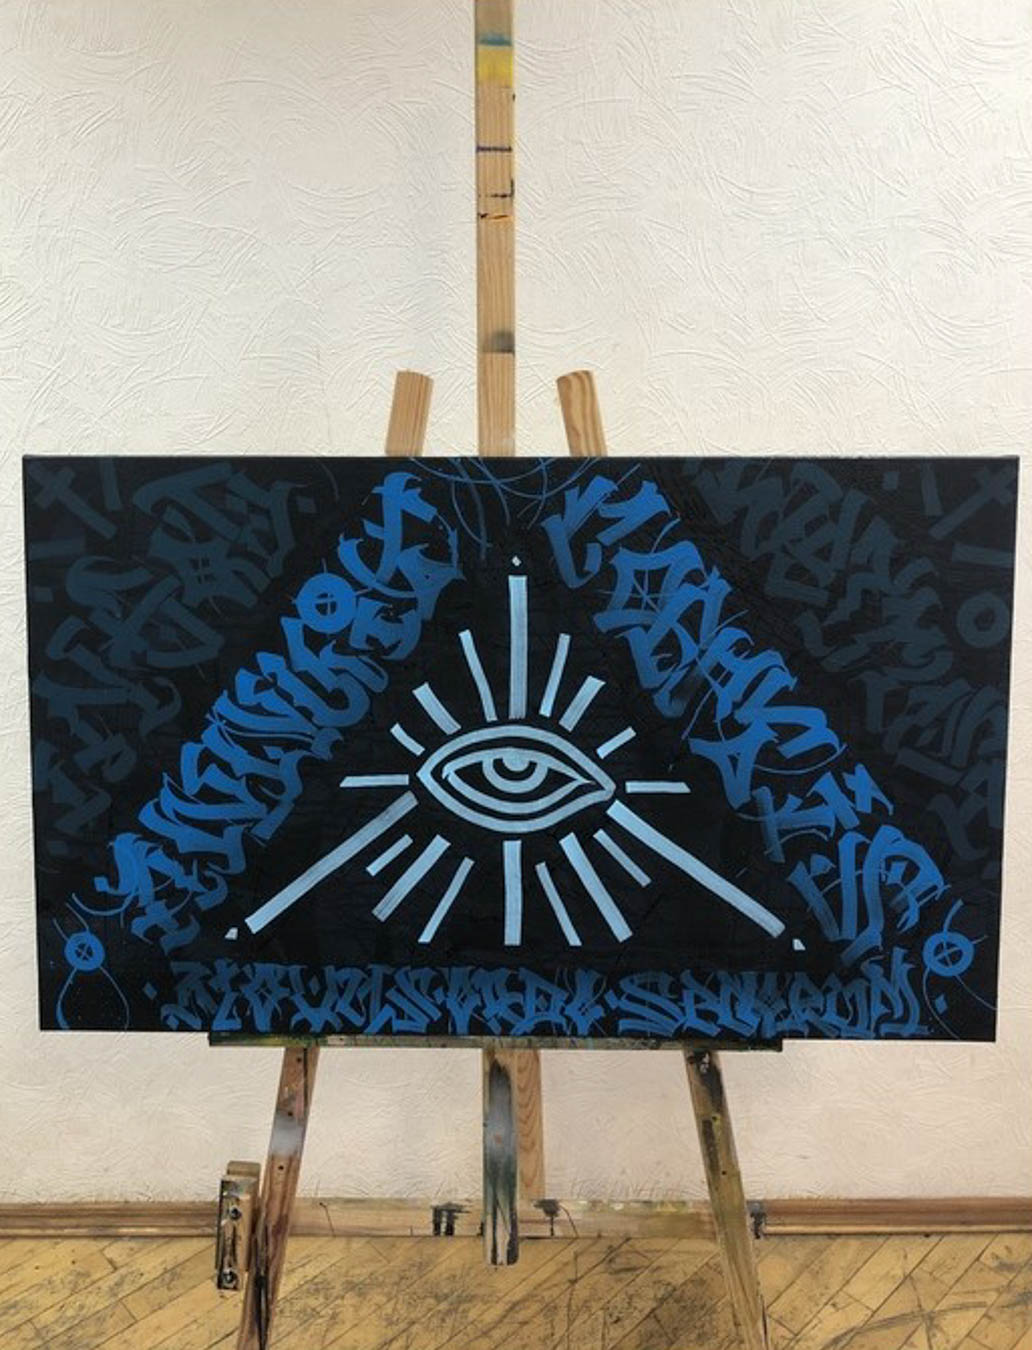 Print of eye surrounded by pyramid shape made of symbols.